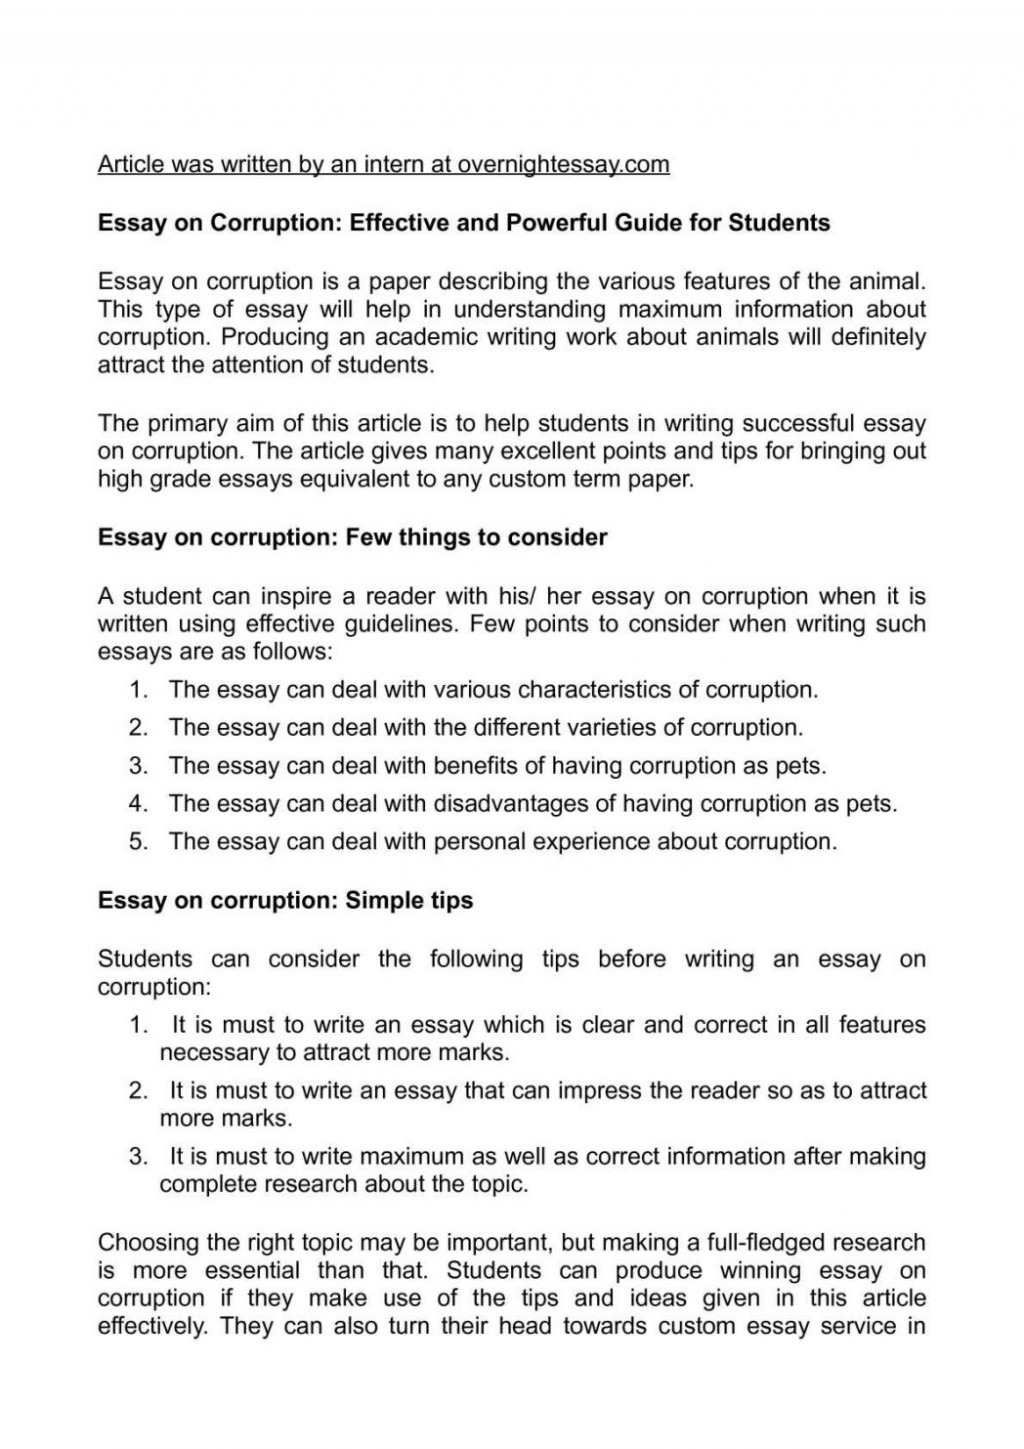 008 This I Believe Essays By Students Essay Example Easy Calam Atilde Copy O On Corruption Effective Samples Good Topics Template Wonderful Large